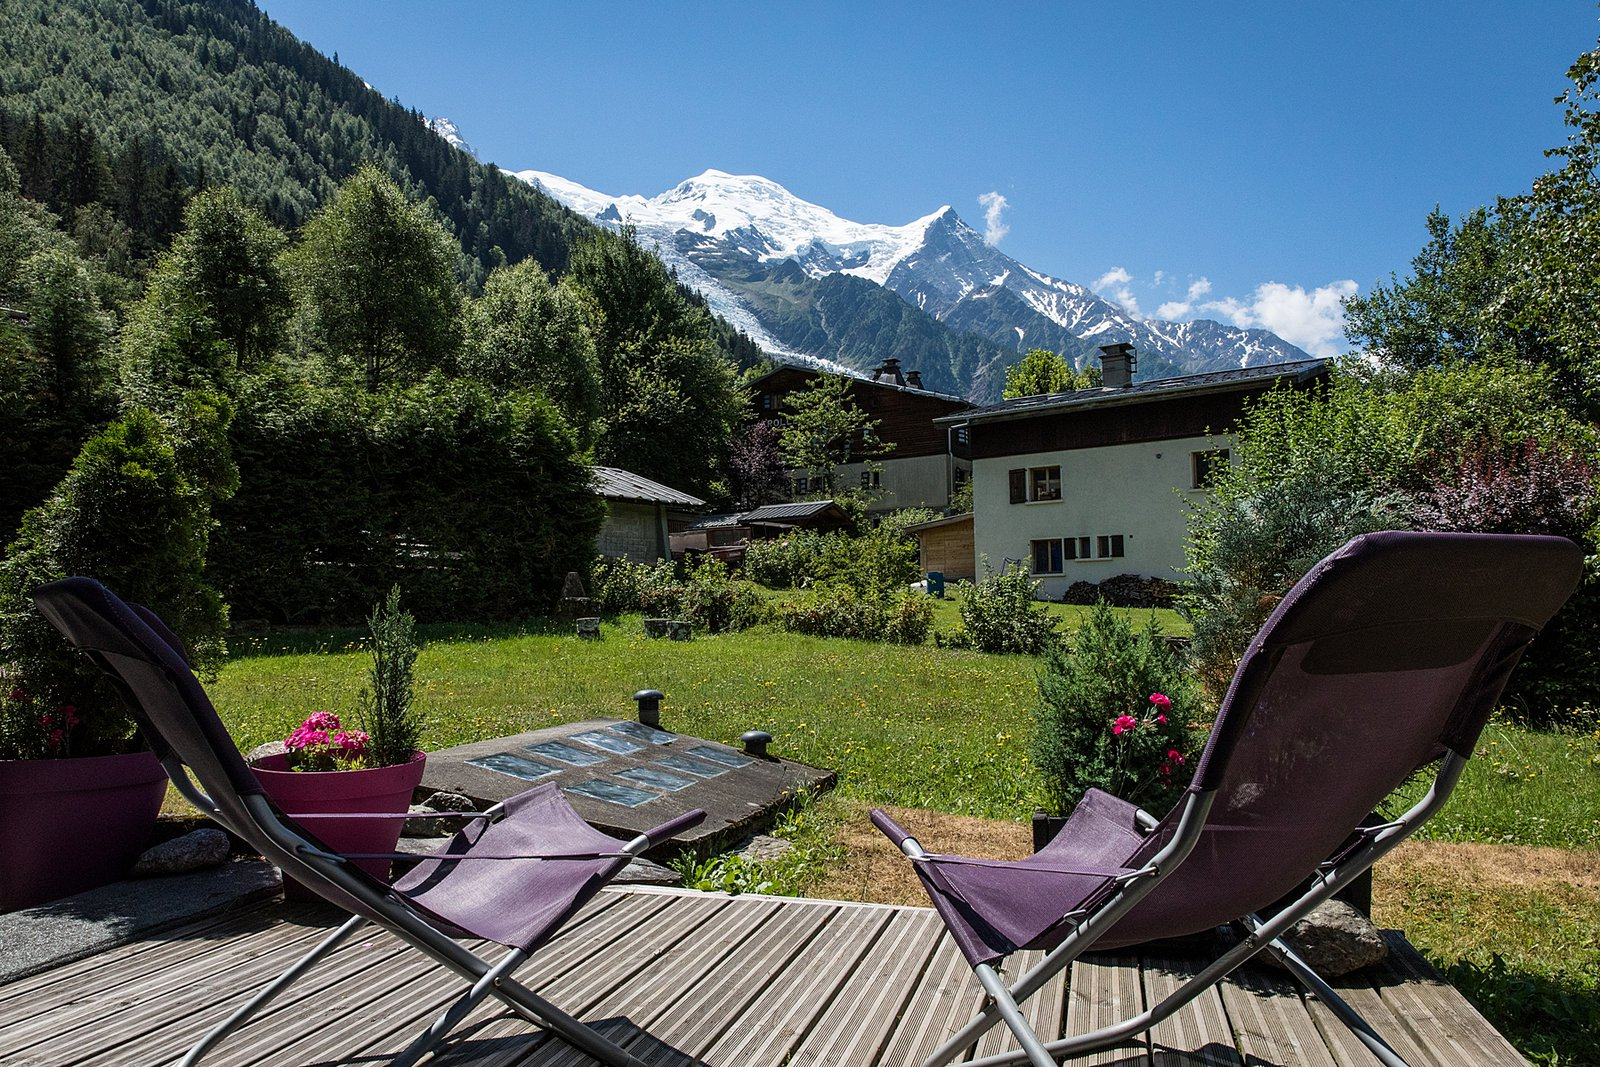 Cry Apartment, Chamonix: Self-catering accommodation